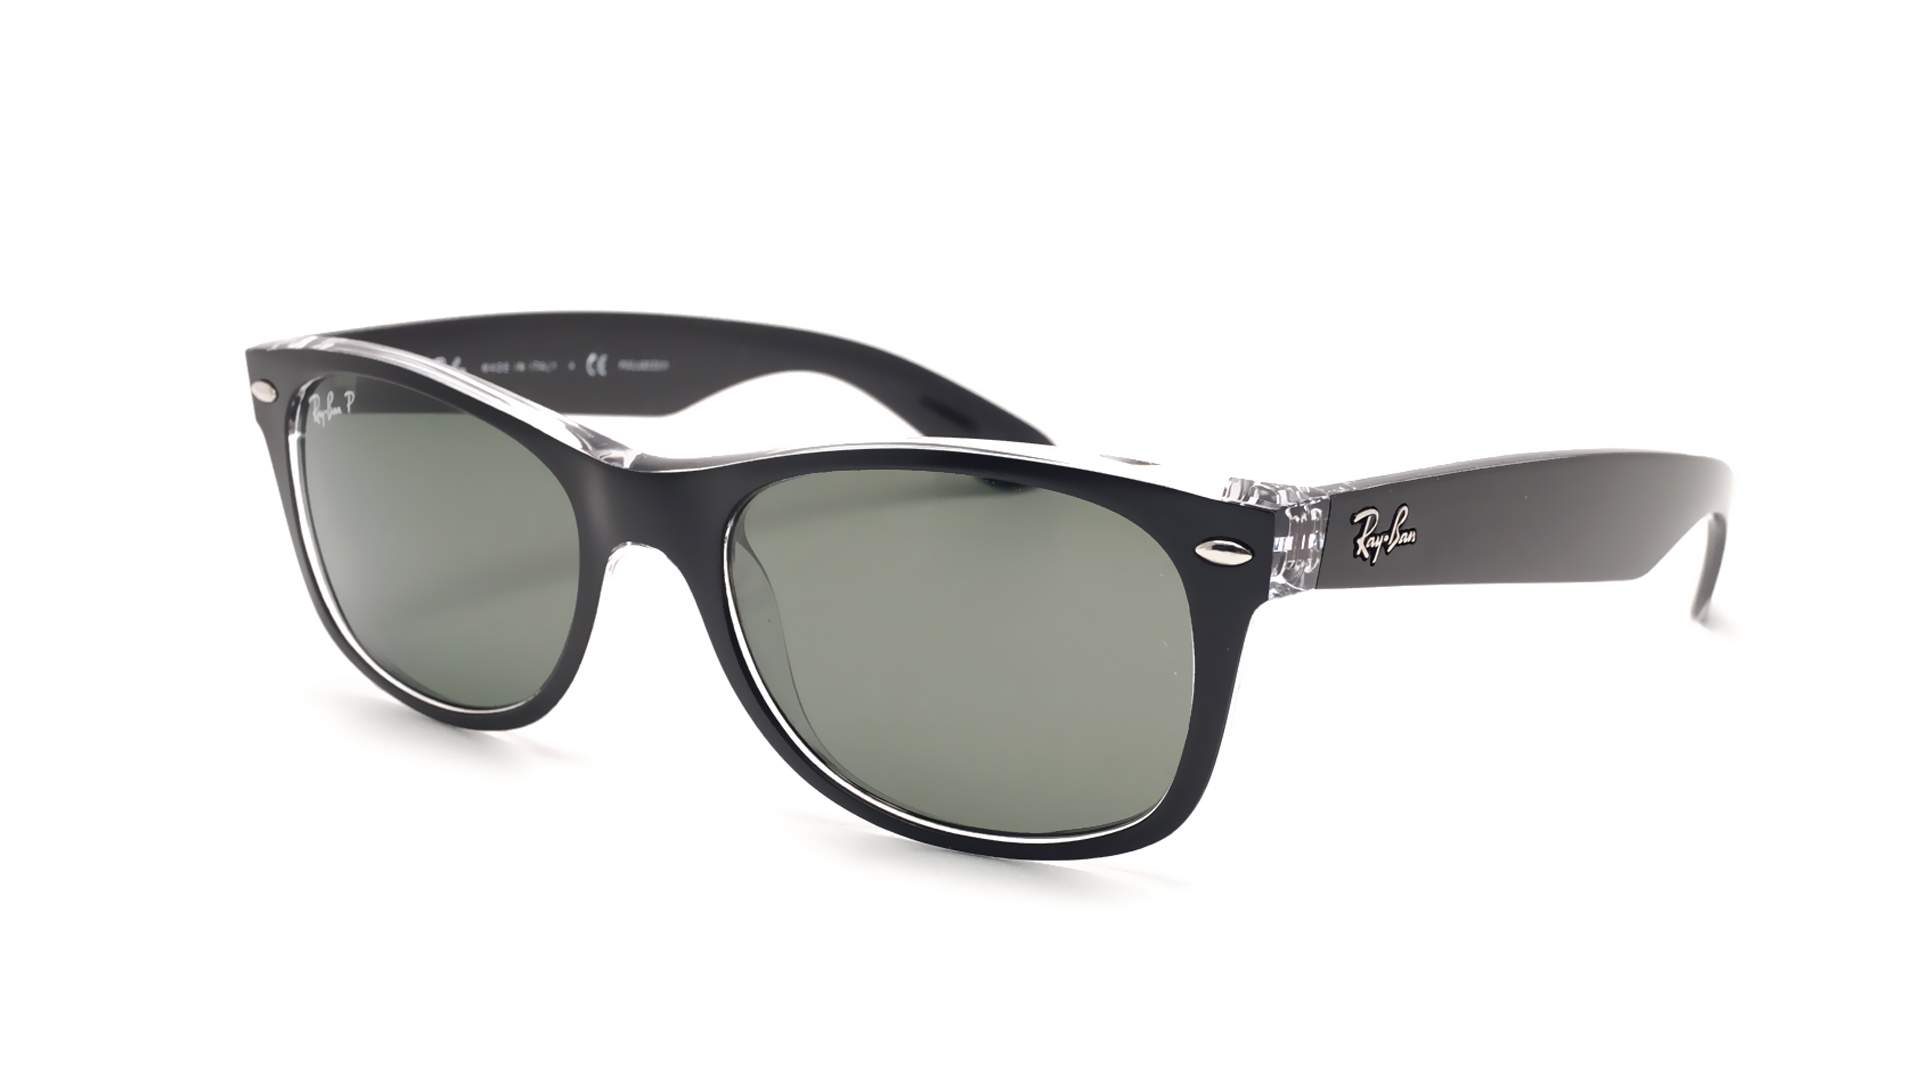 0e53bb31eda Sunglasses Ray-Ban New Wayfarer Black RB2132 6052 58 55-18 Large Polarized